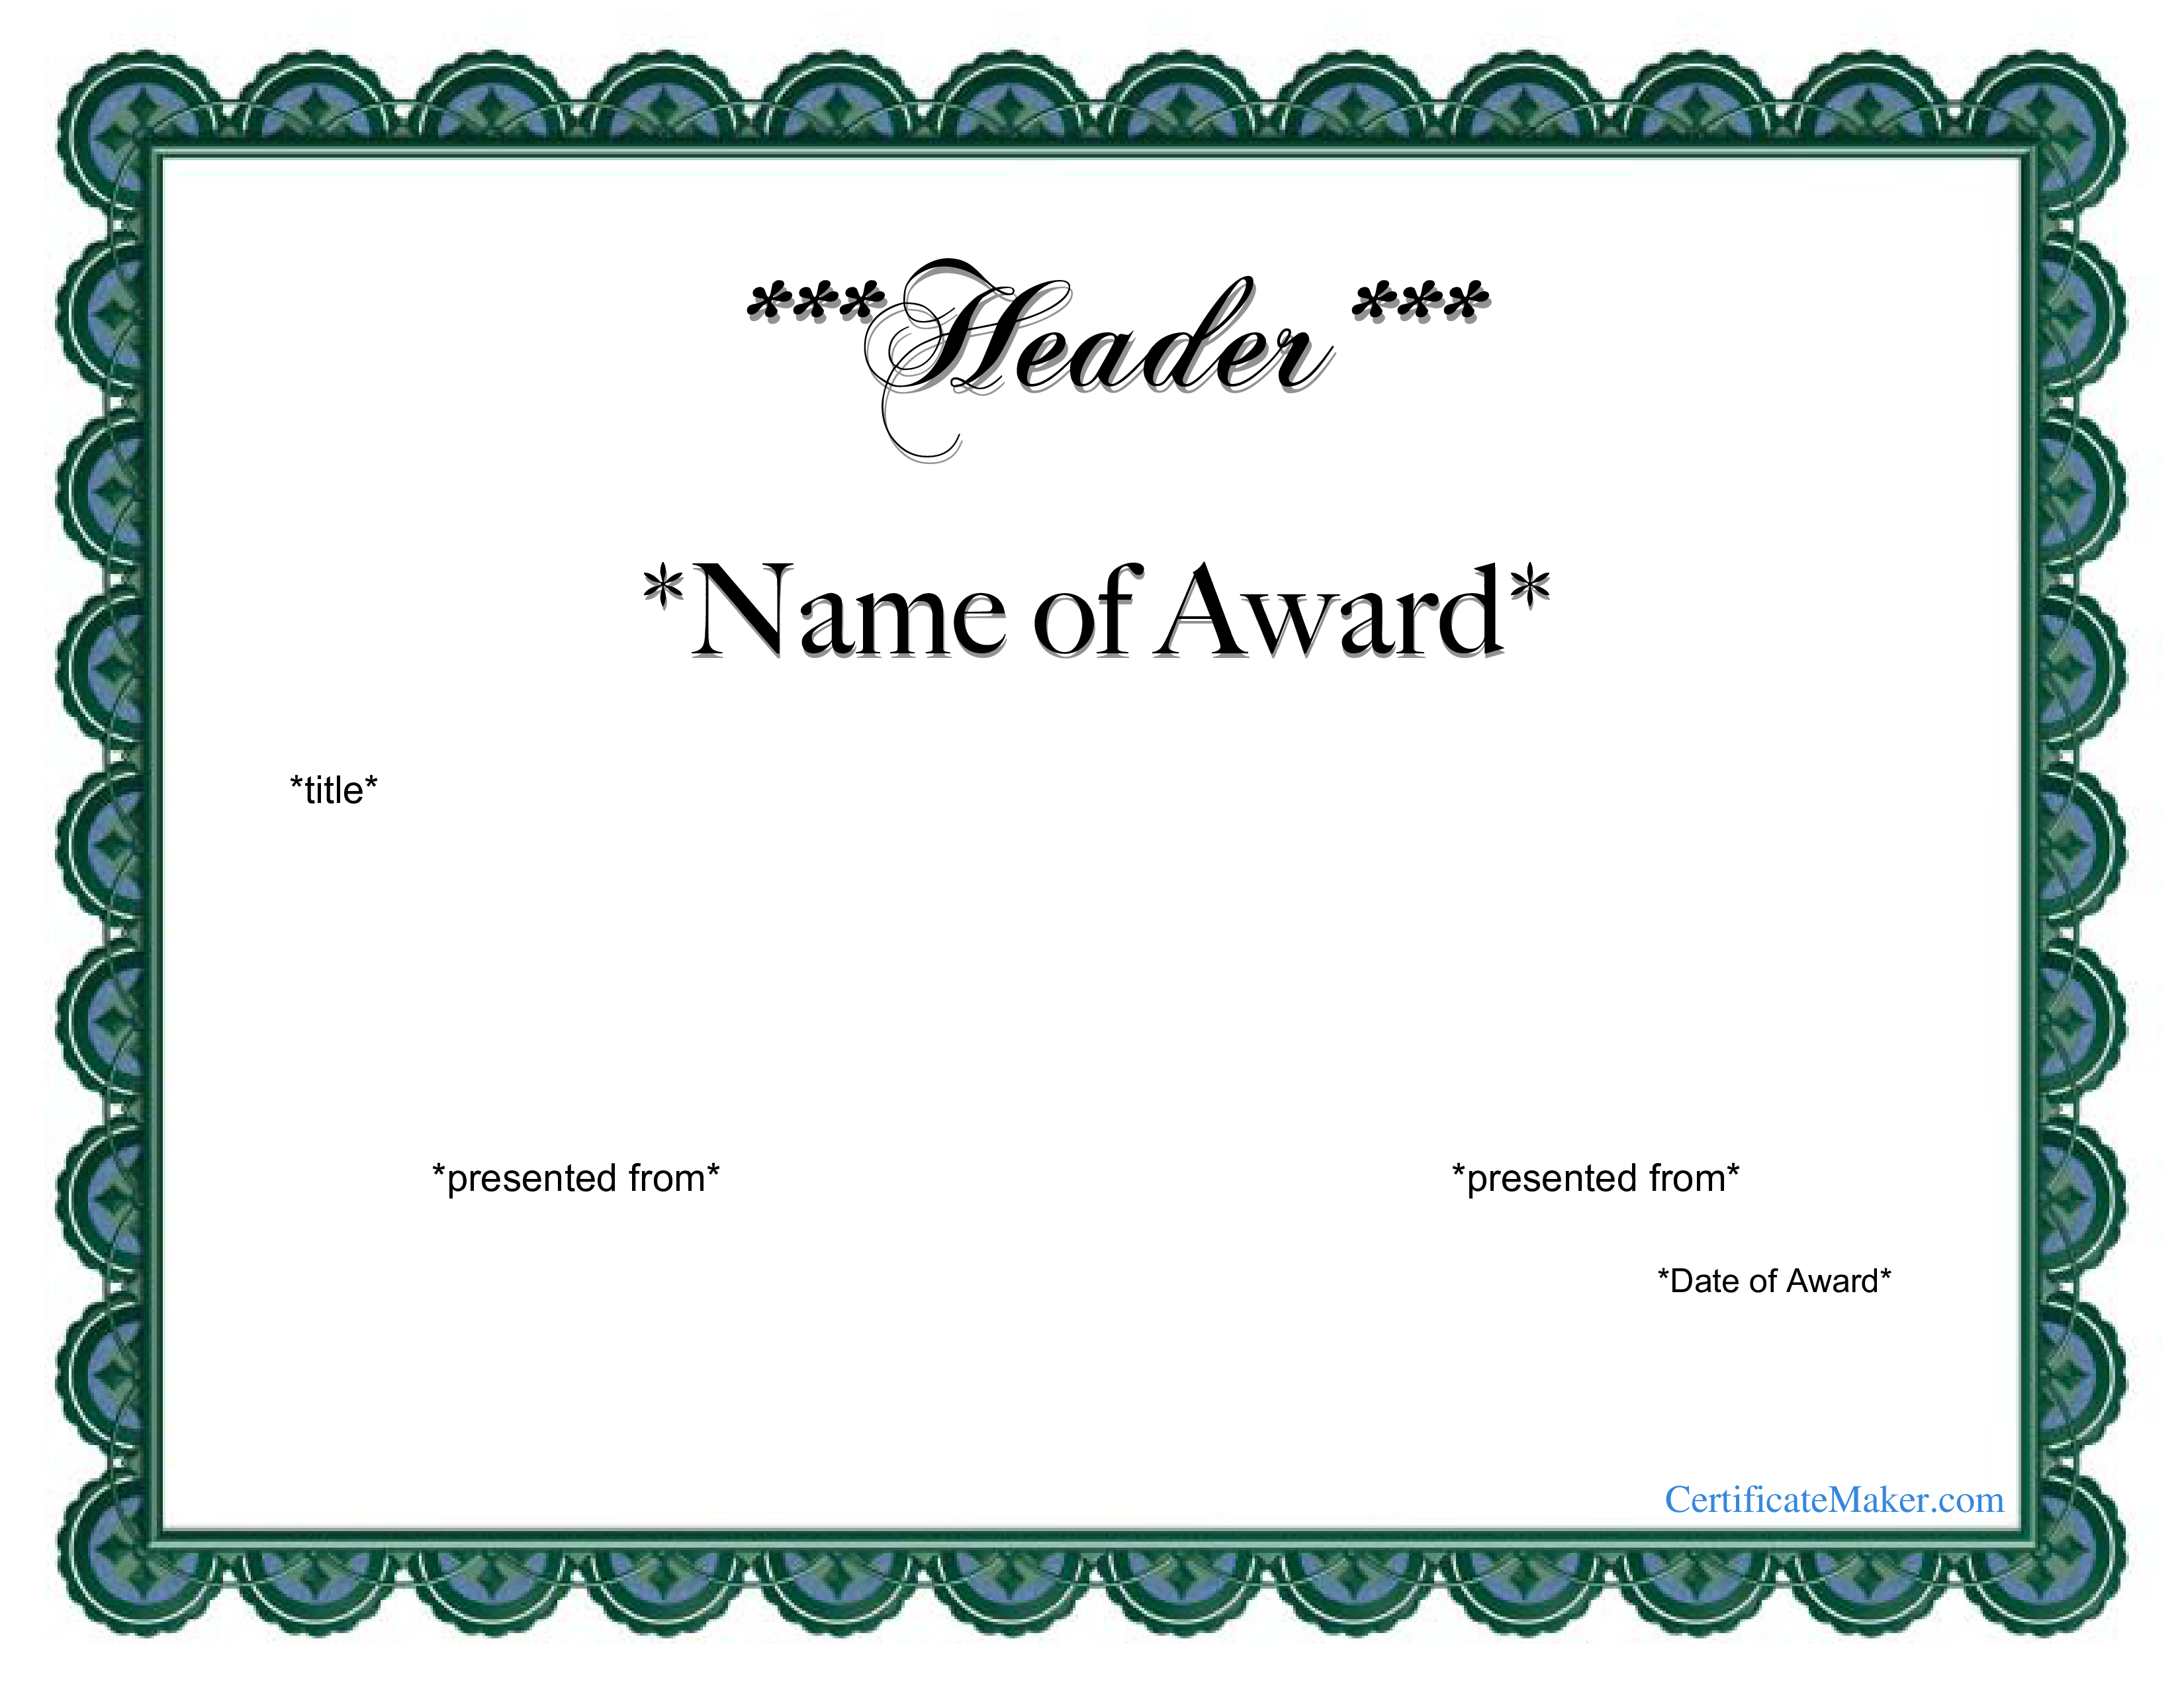 Free Printable Award Certificates Certificate Templates At - Free Printable Award Certificates For Elementary Students